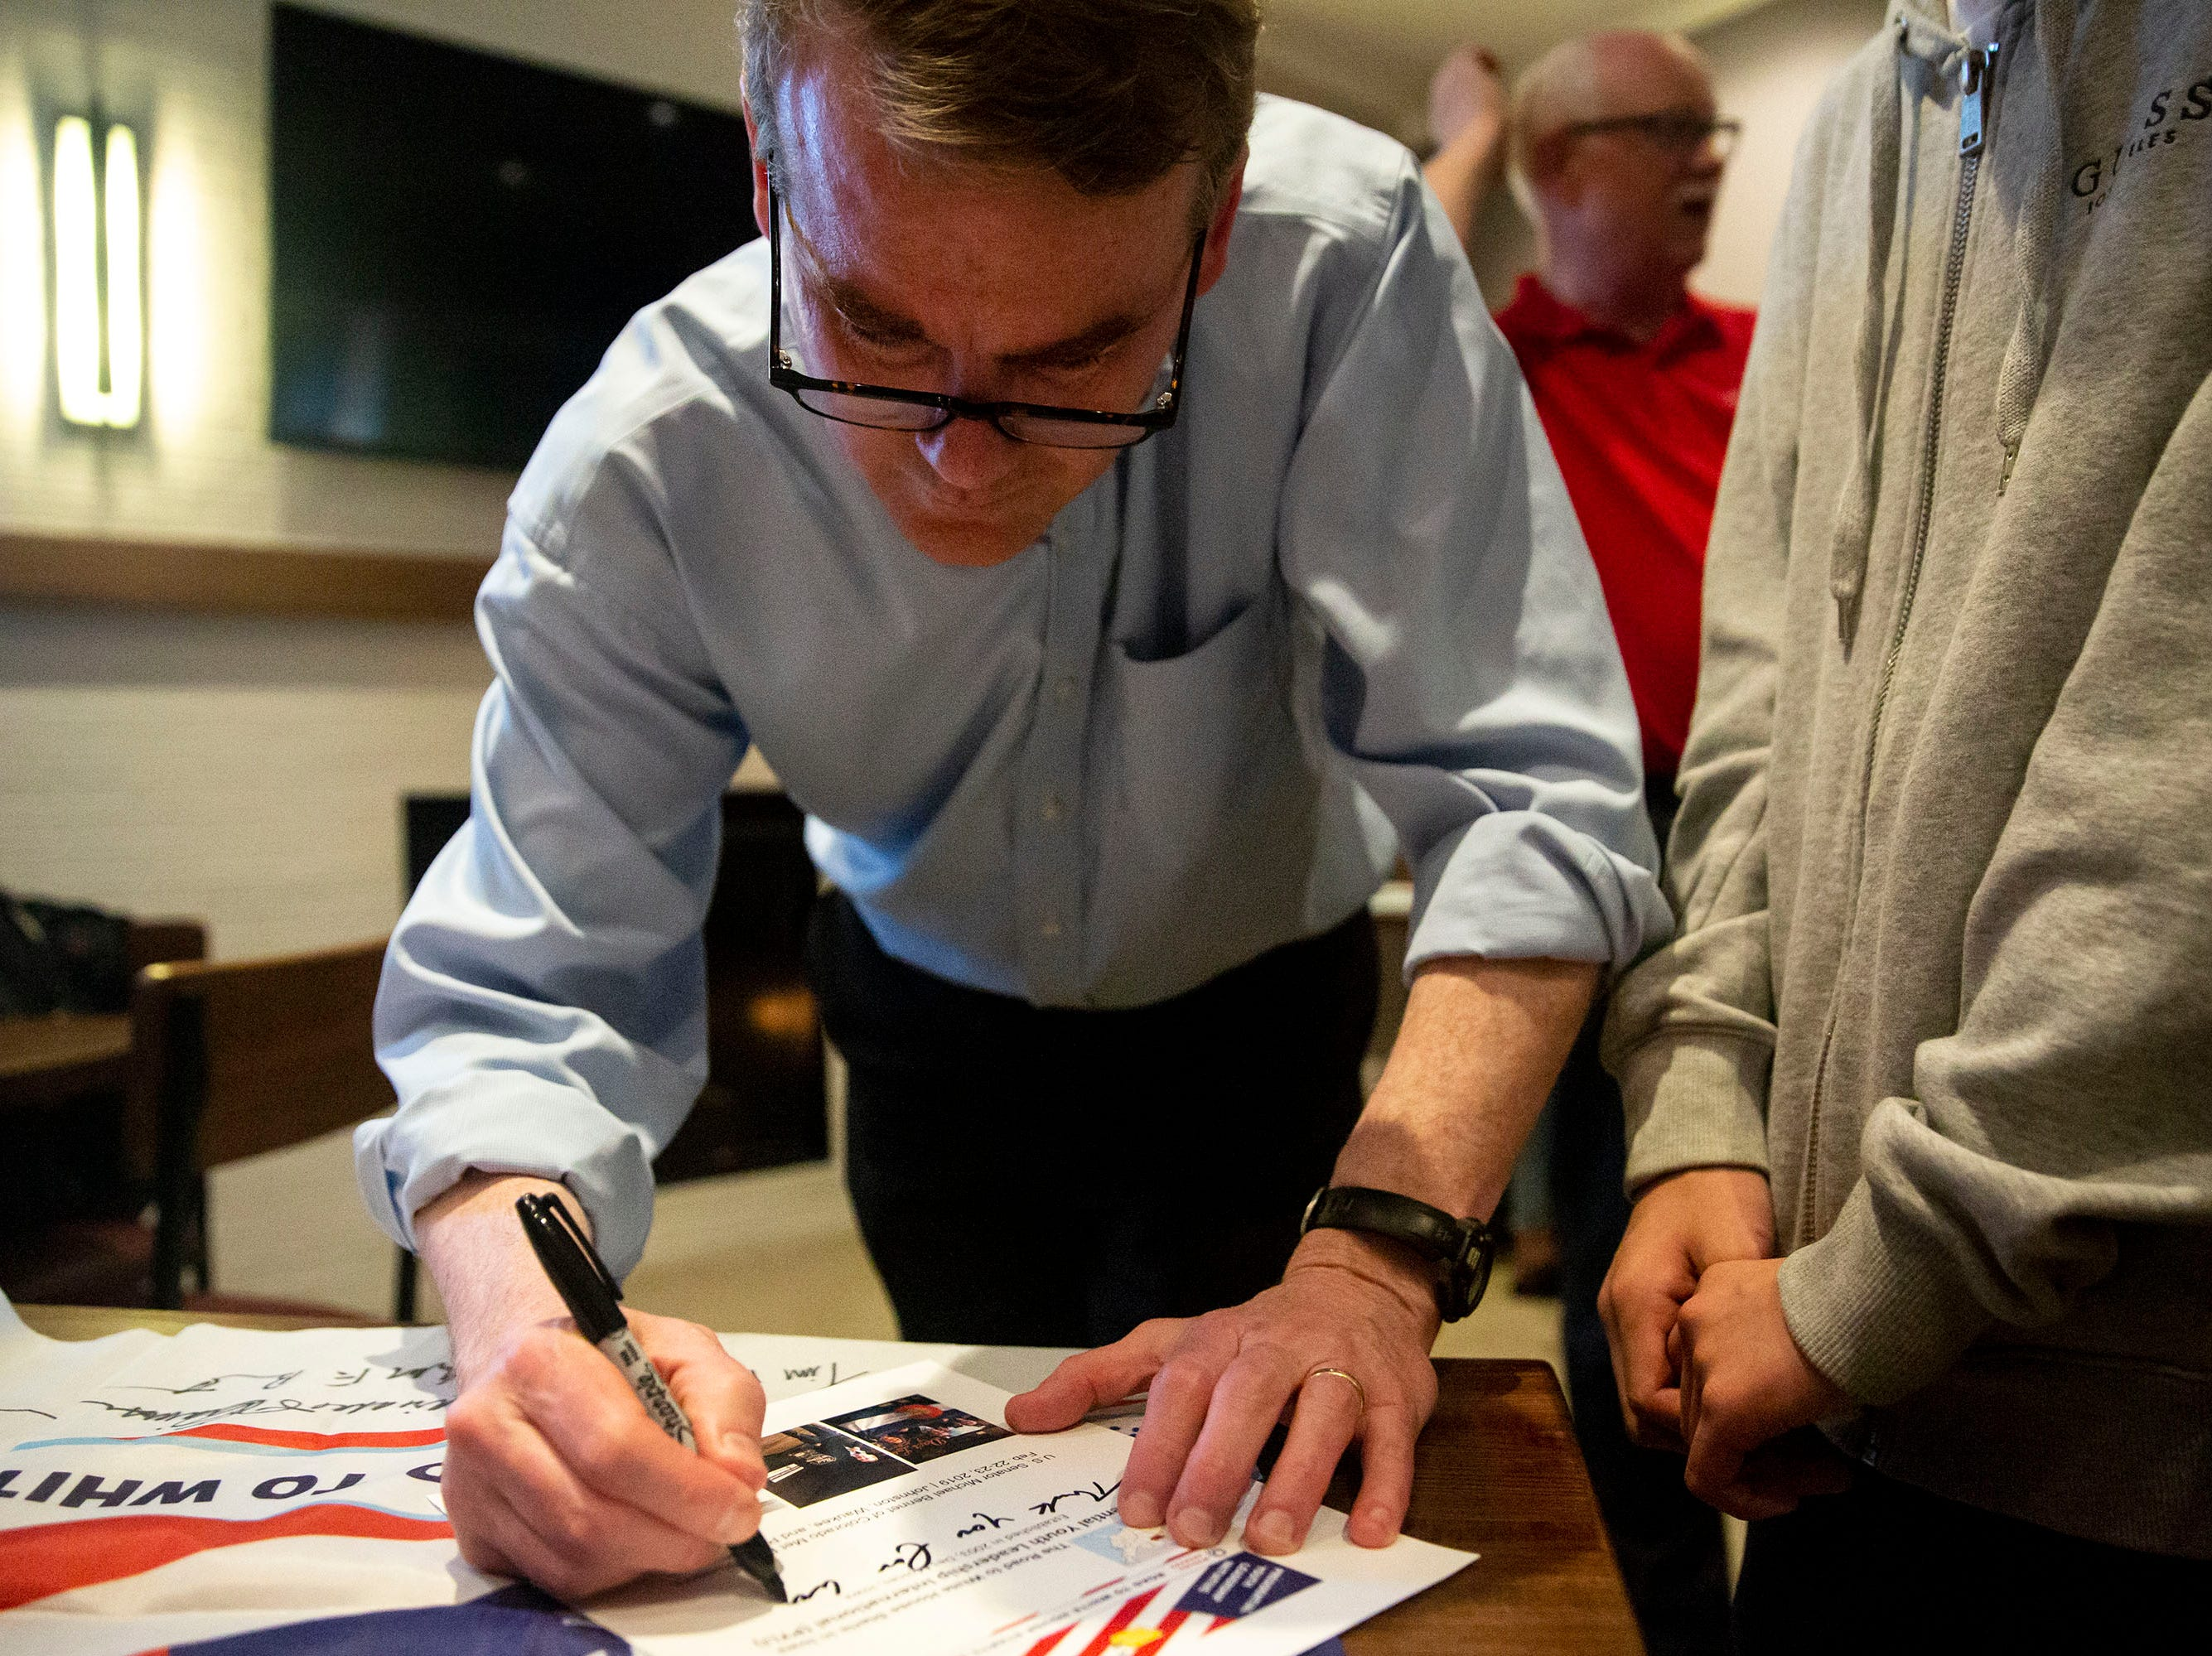 U.S. Sen. Michael Bennet, D-Colo, signs an autograph after giving a speech and answering questions on Monday, April 8, 2019, during a meet and greet hosted by the Polk County Democrats at Teddy Maroon's in Des Moines.